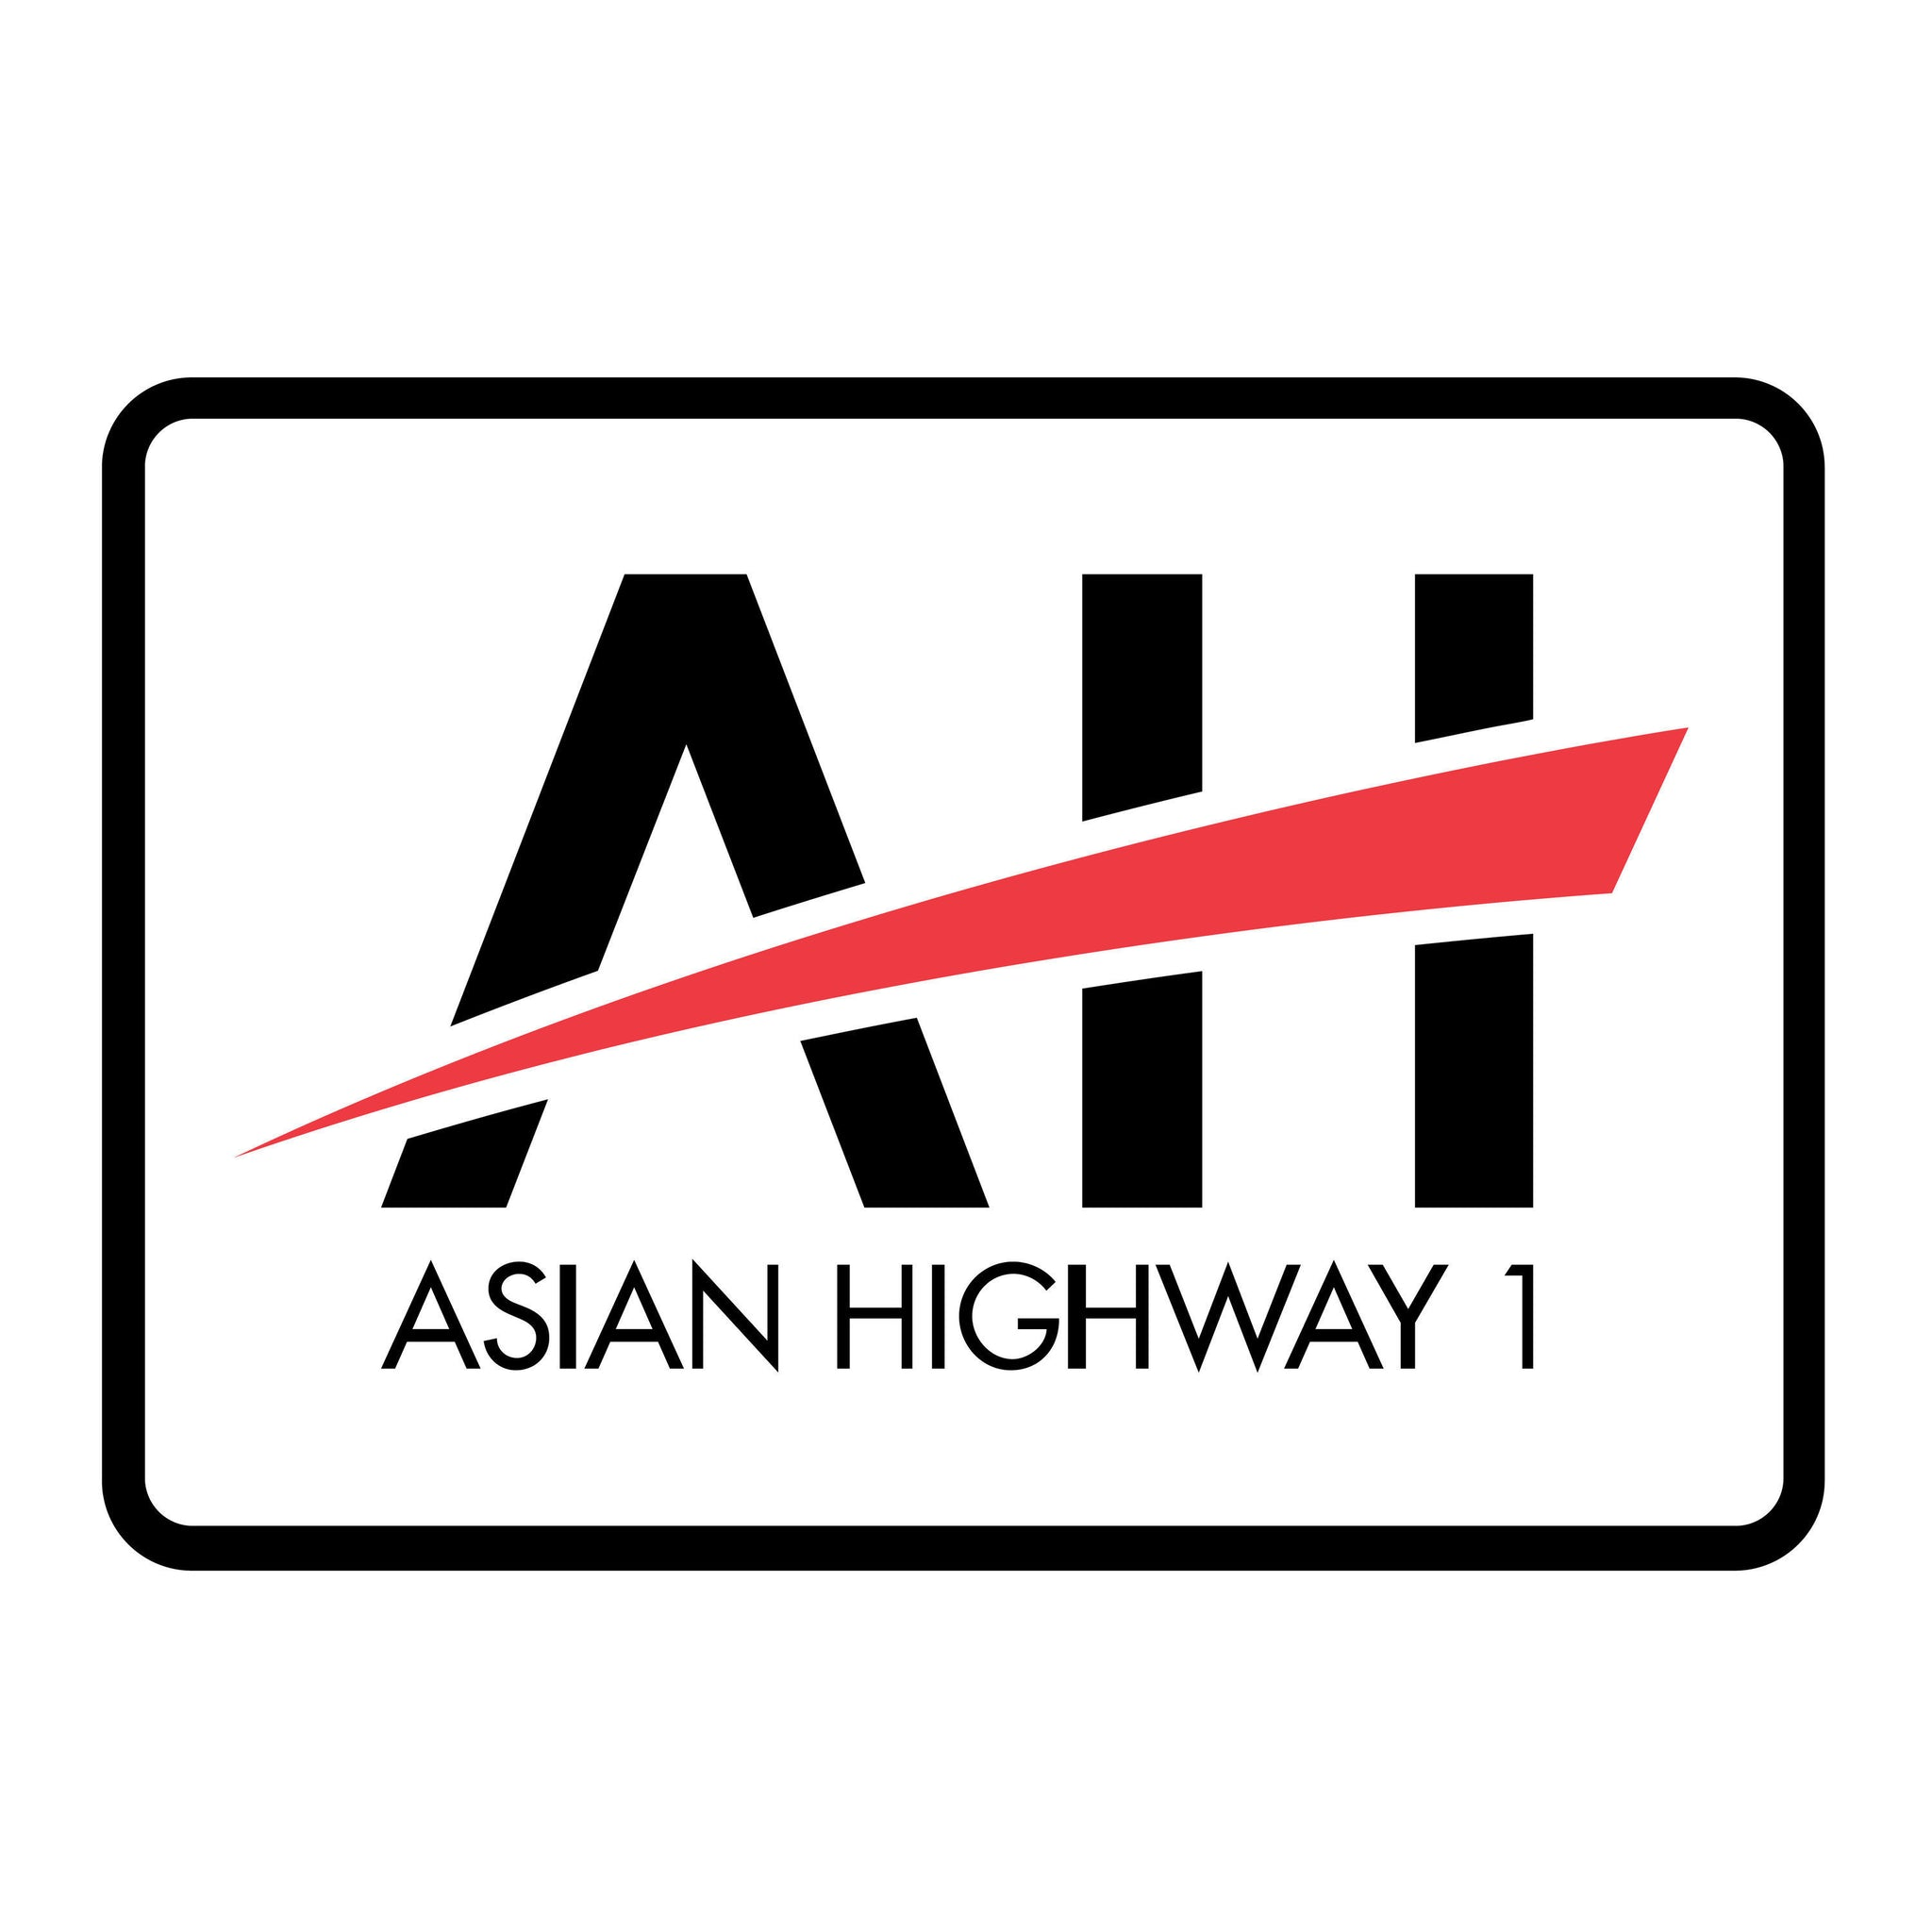 The Asian Highway x Gopi Shah Ceramics